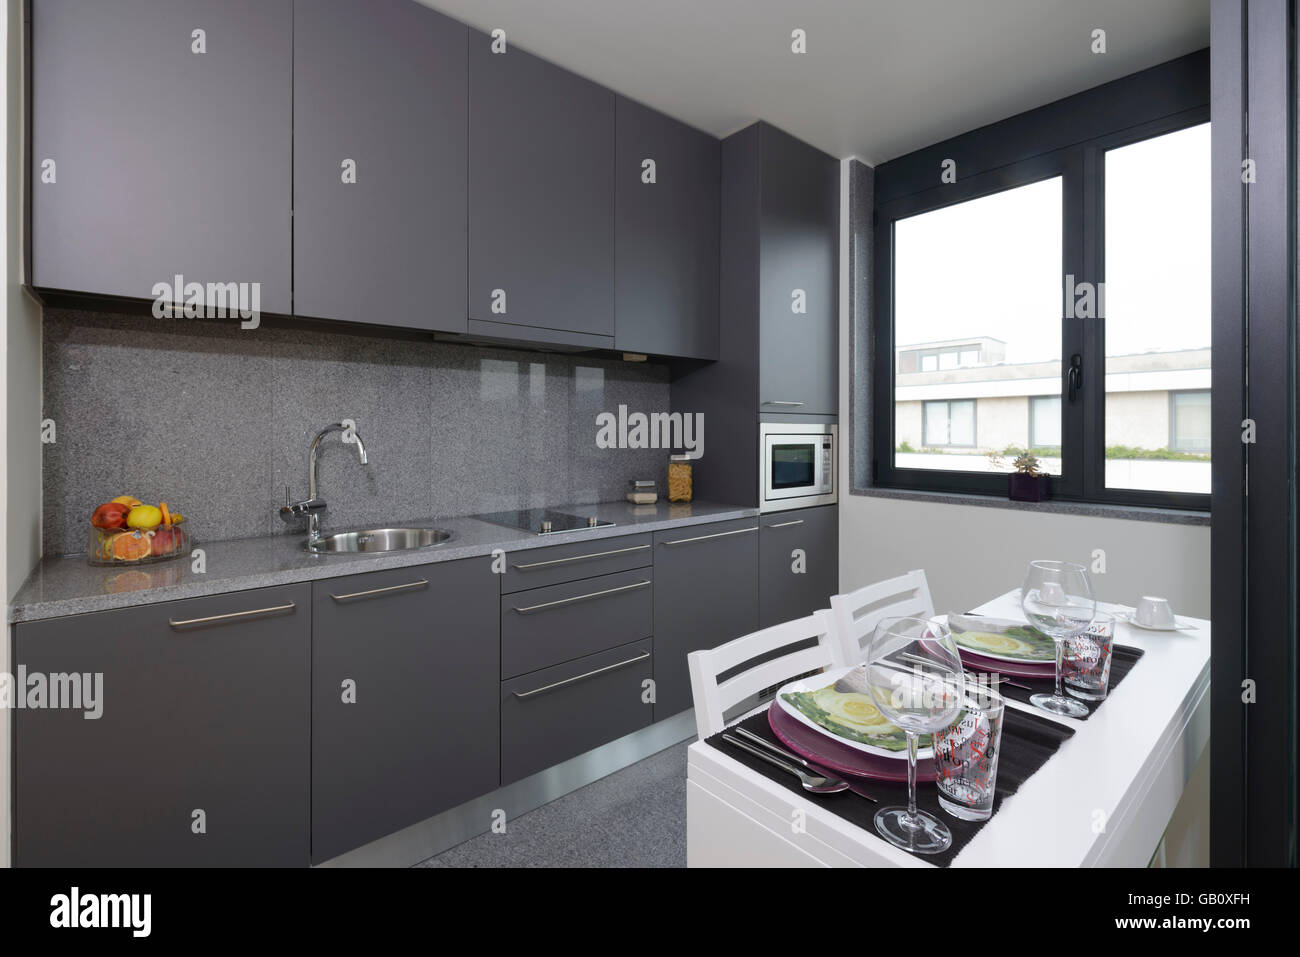 Small modern grey kitchen with dining table - Stock Image